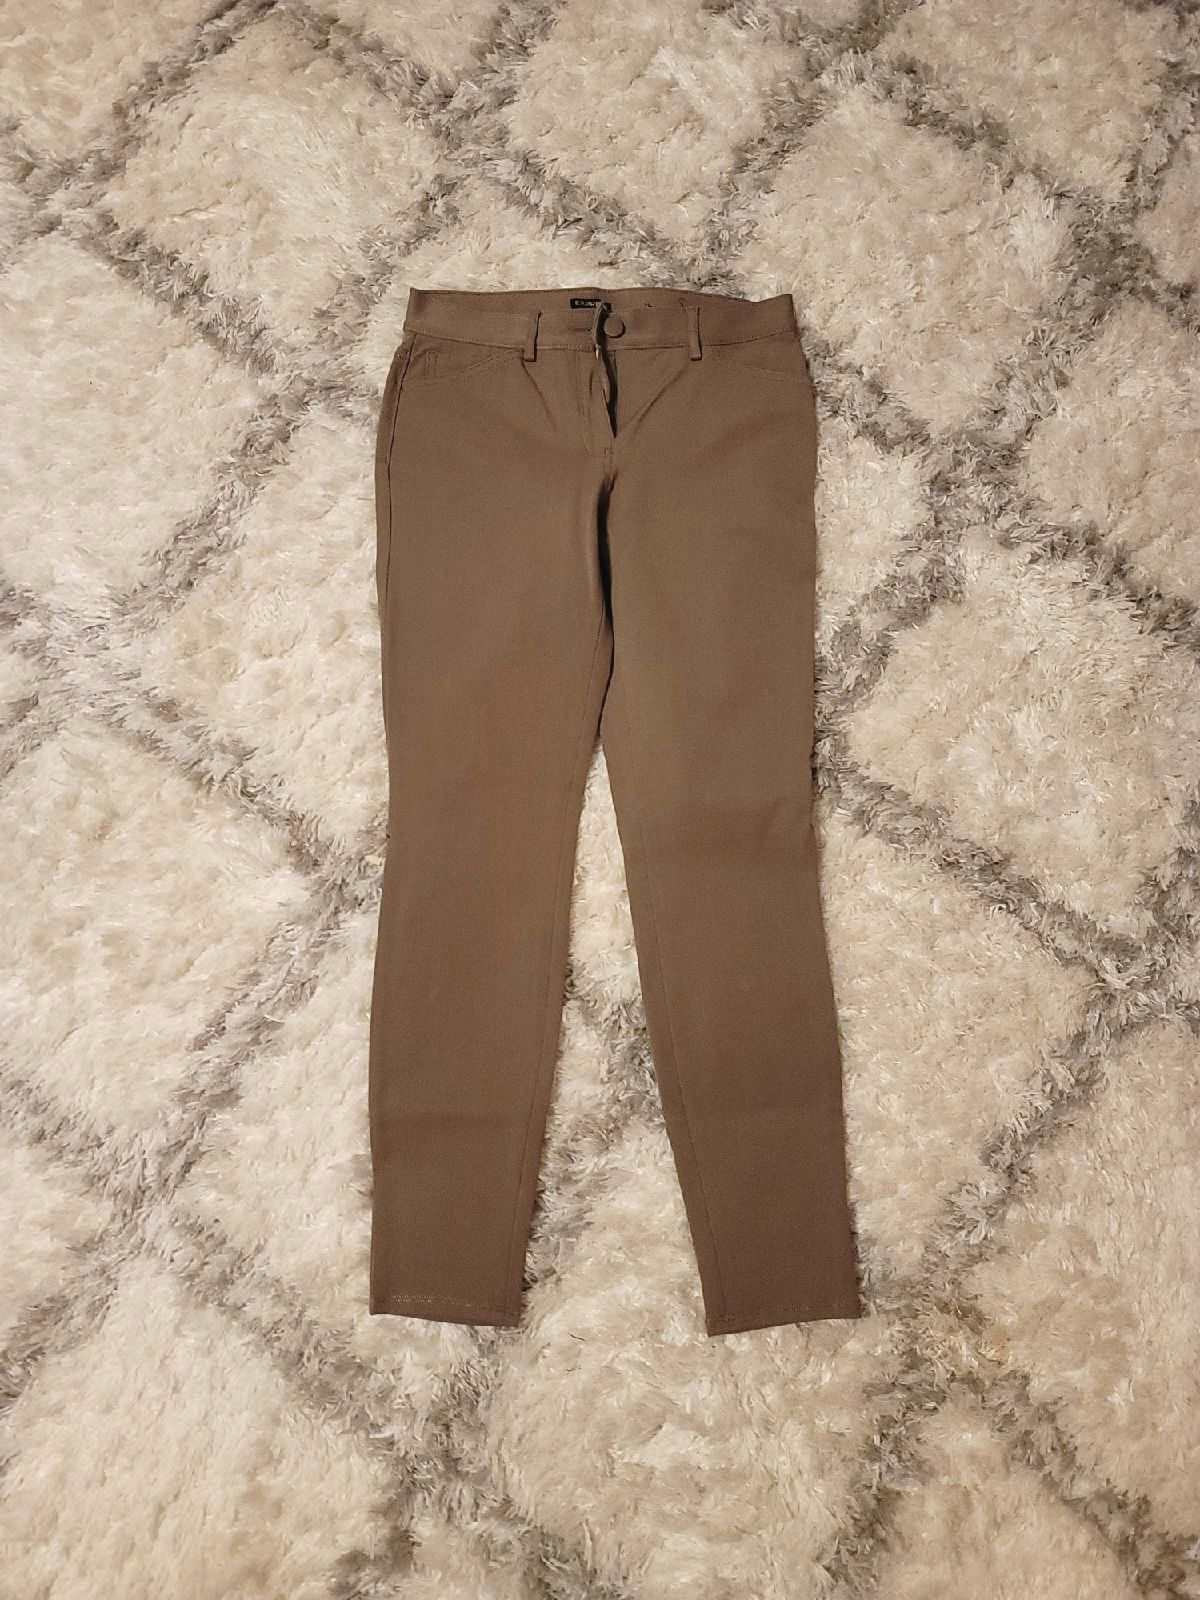 New Express Stretch Pants